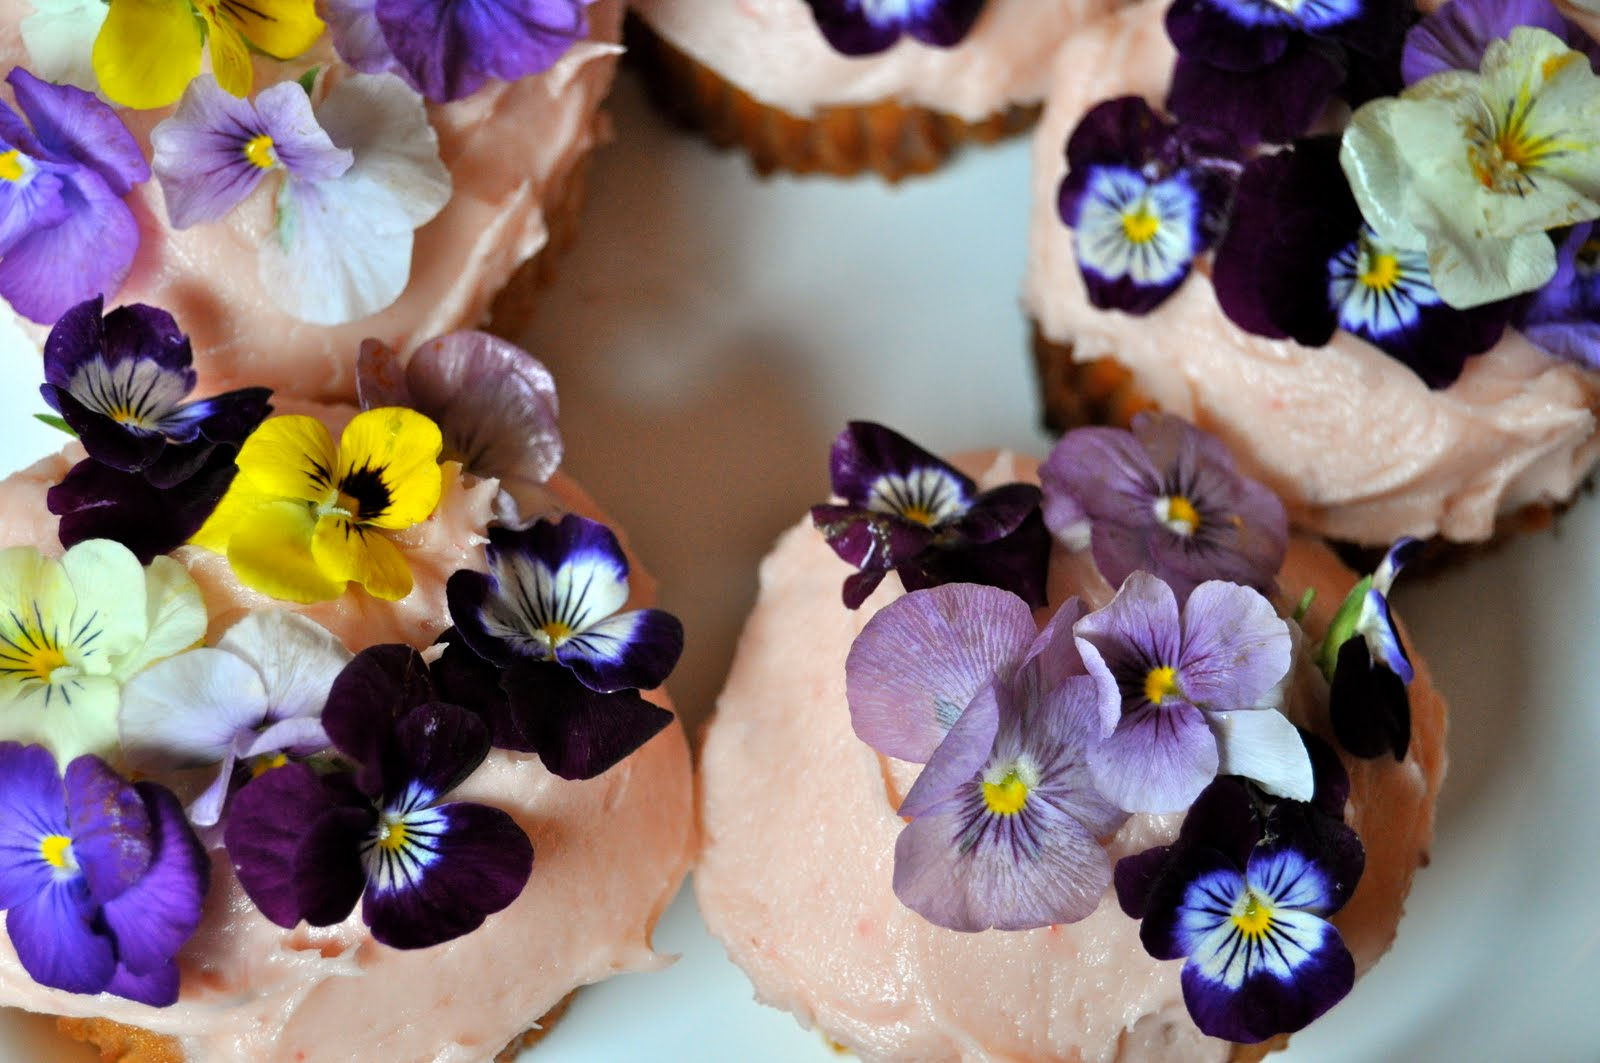 Edible flower simple syrup and cupcakes tribeca yummy mummy mightylinksfo